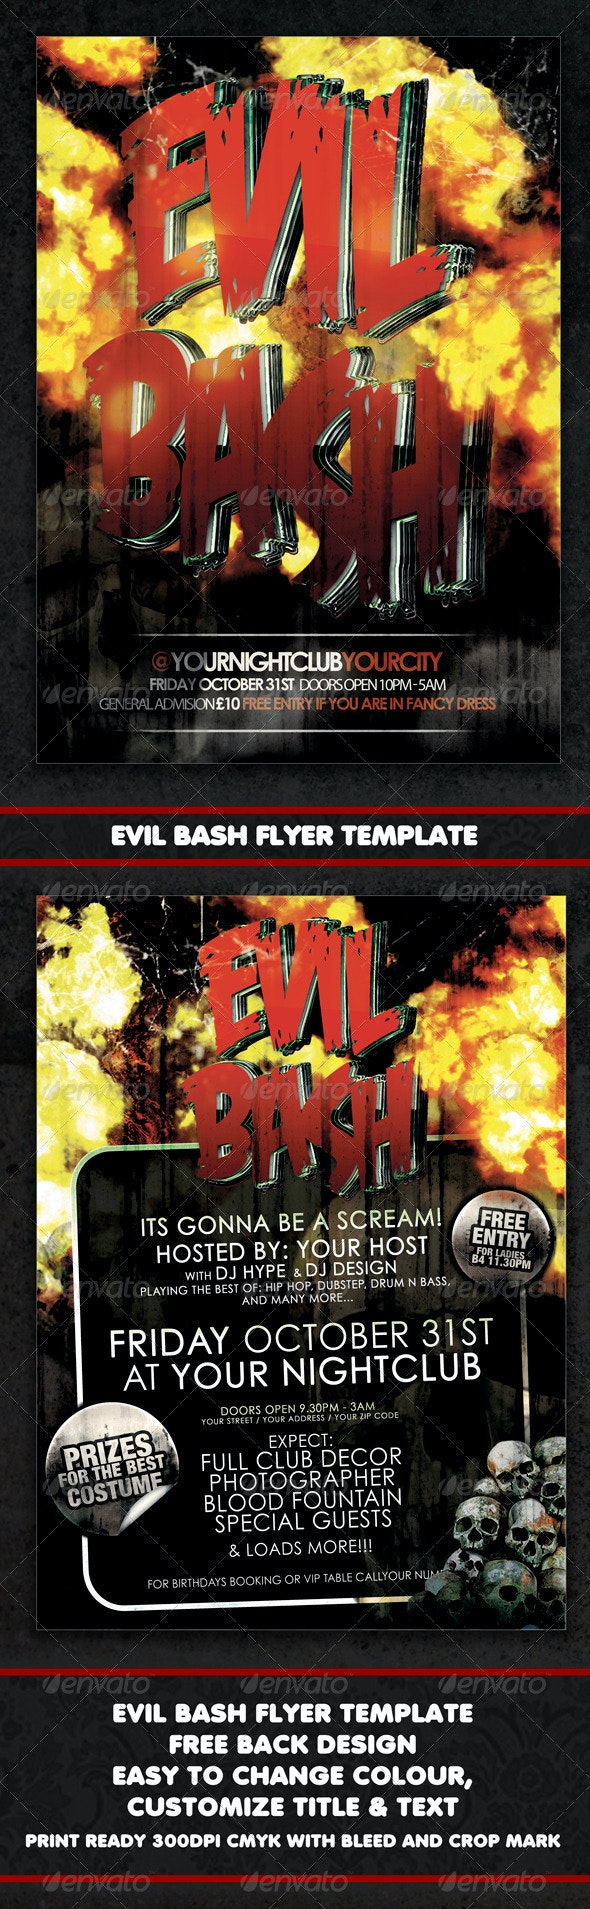 Evil Bash Flyer Or Event Poster Template - Holidays Events